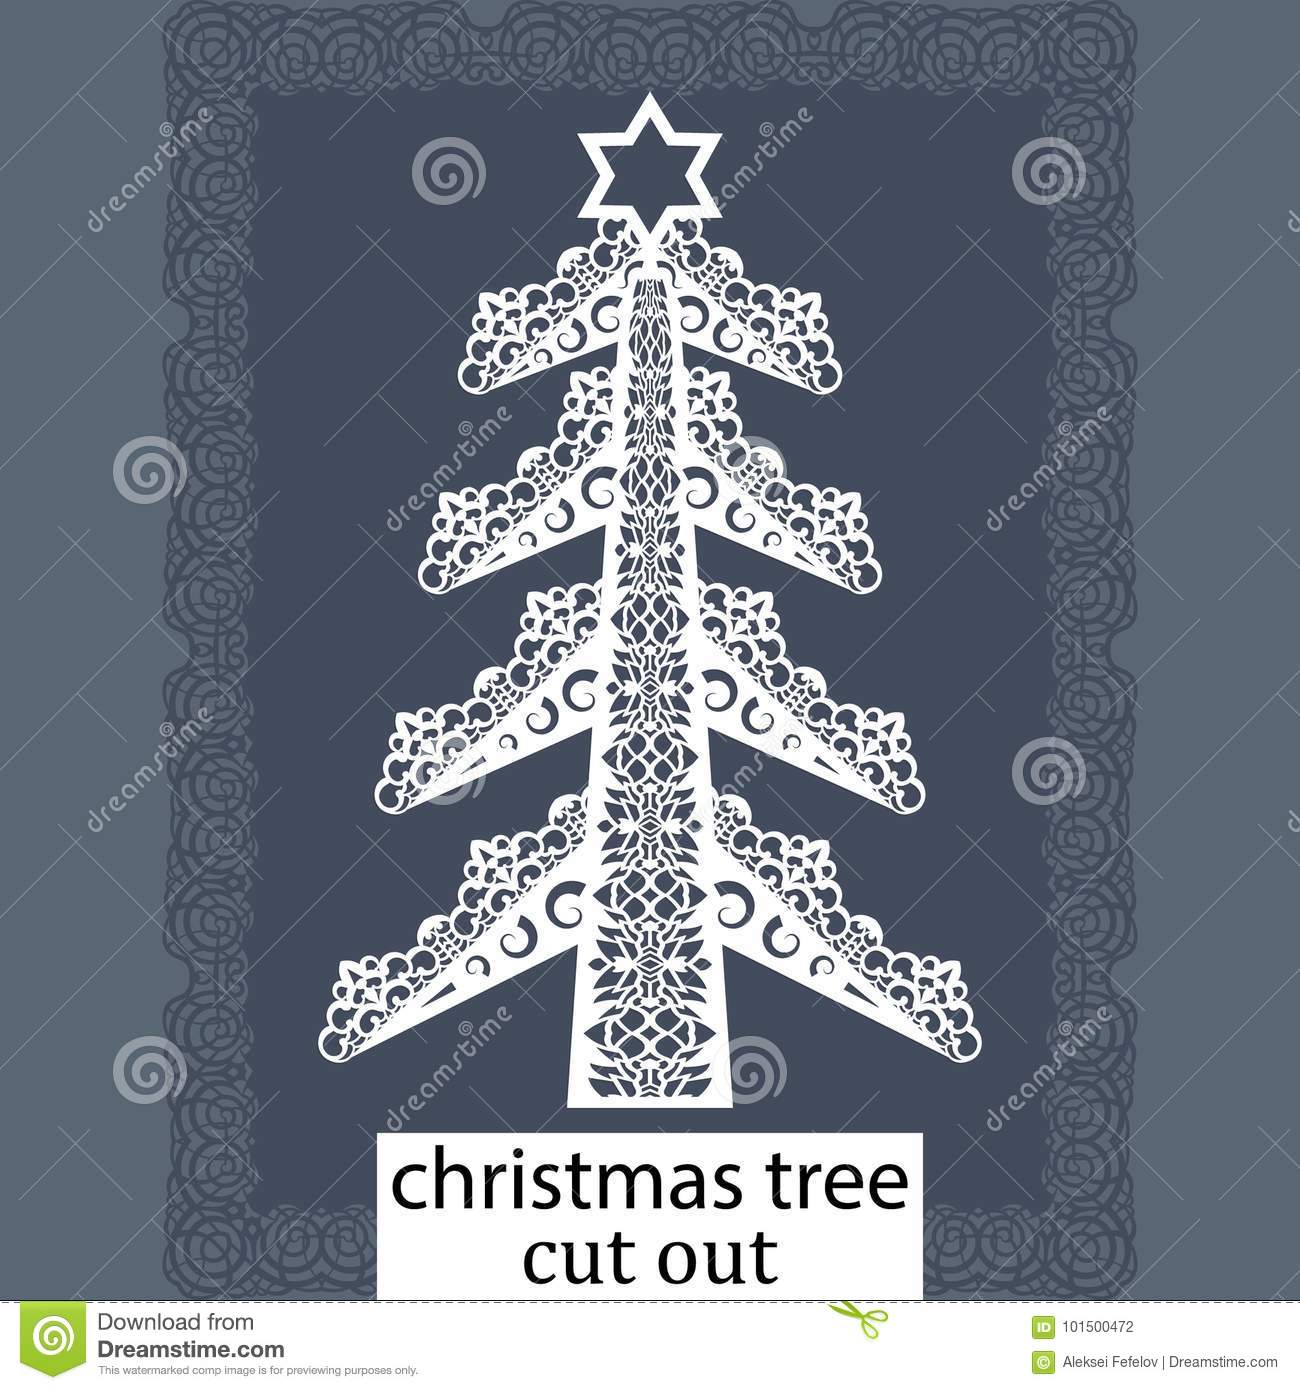 christmas tree a template for laser cutting design element for a christmas and new